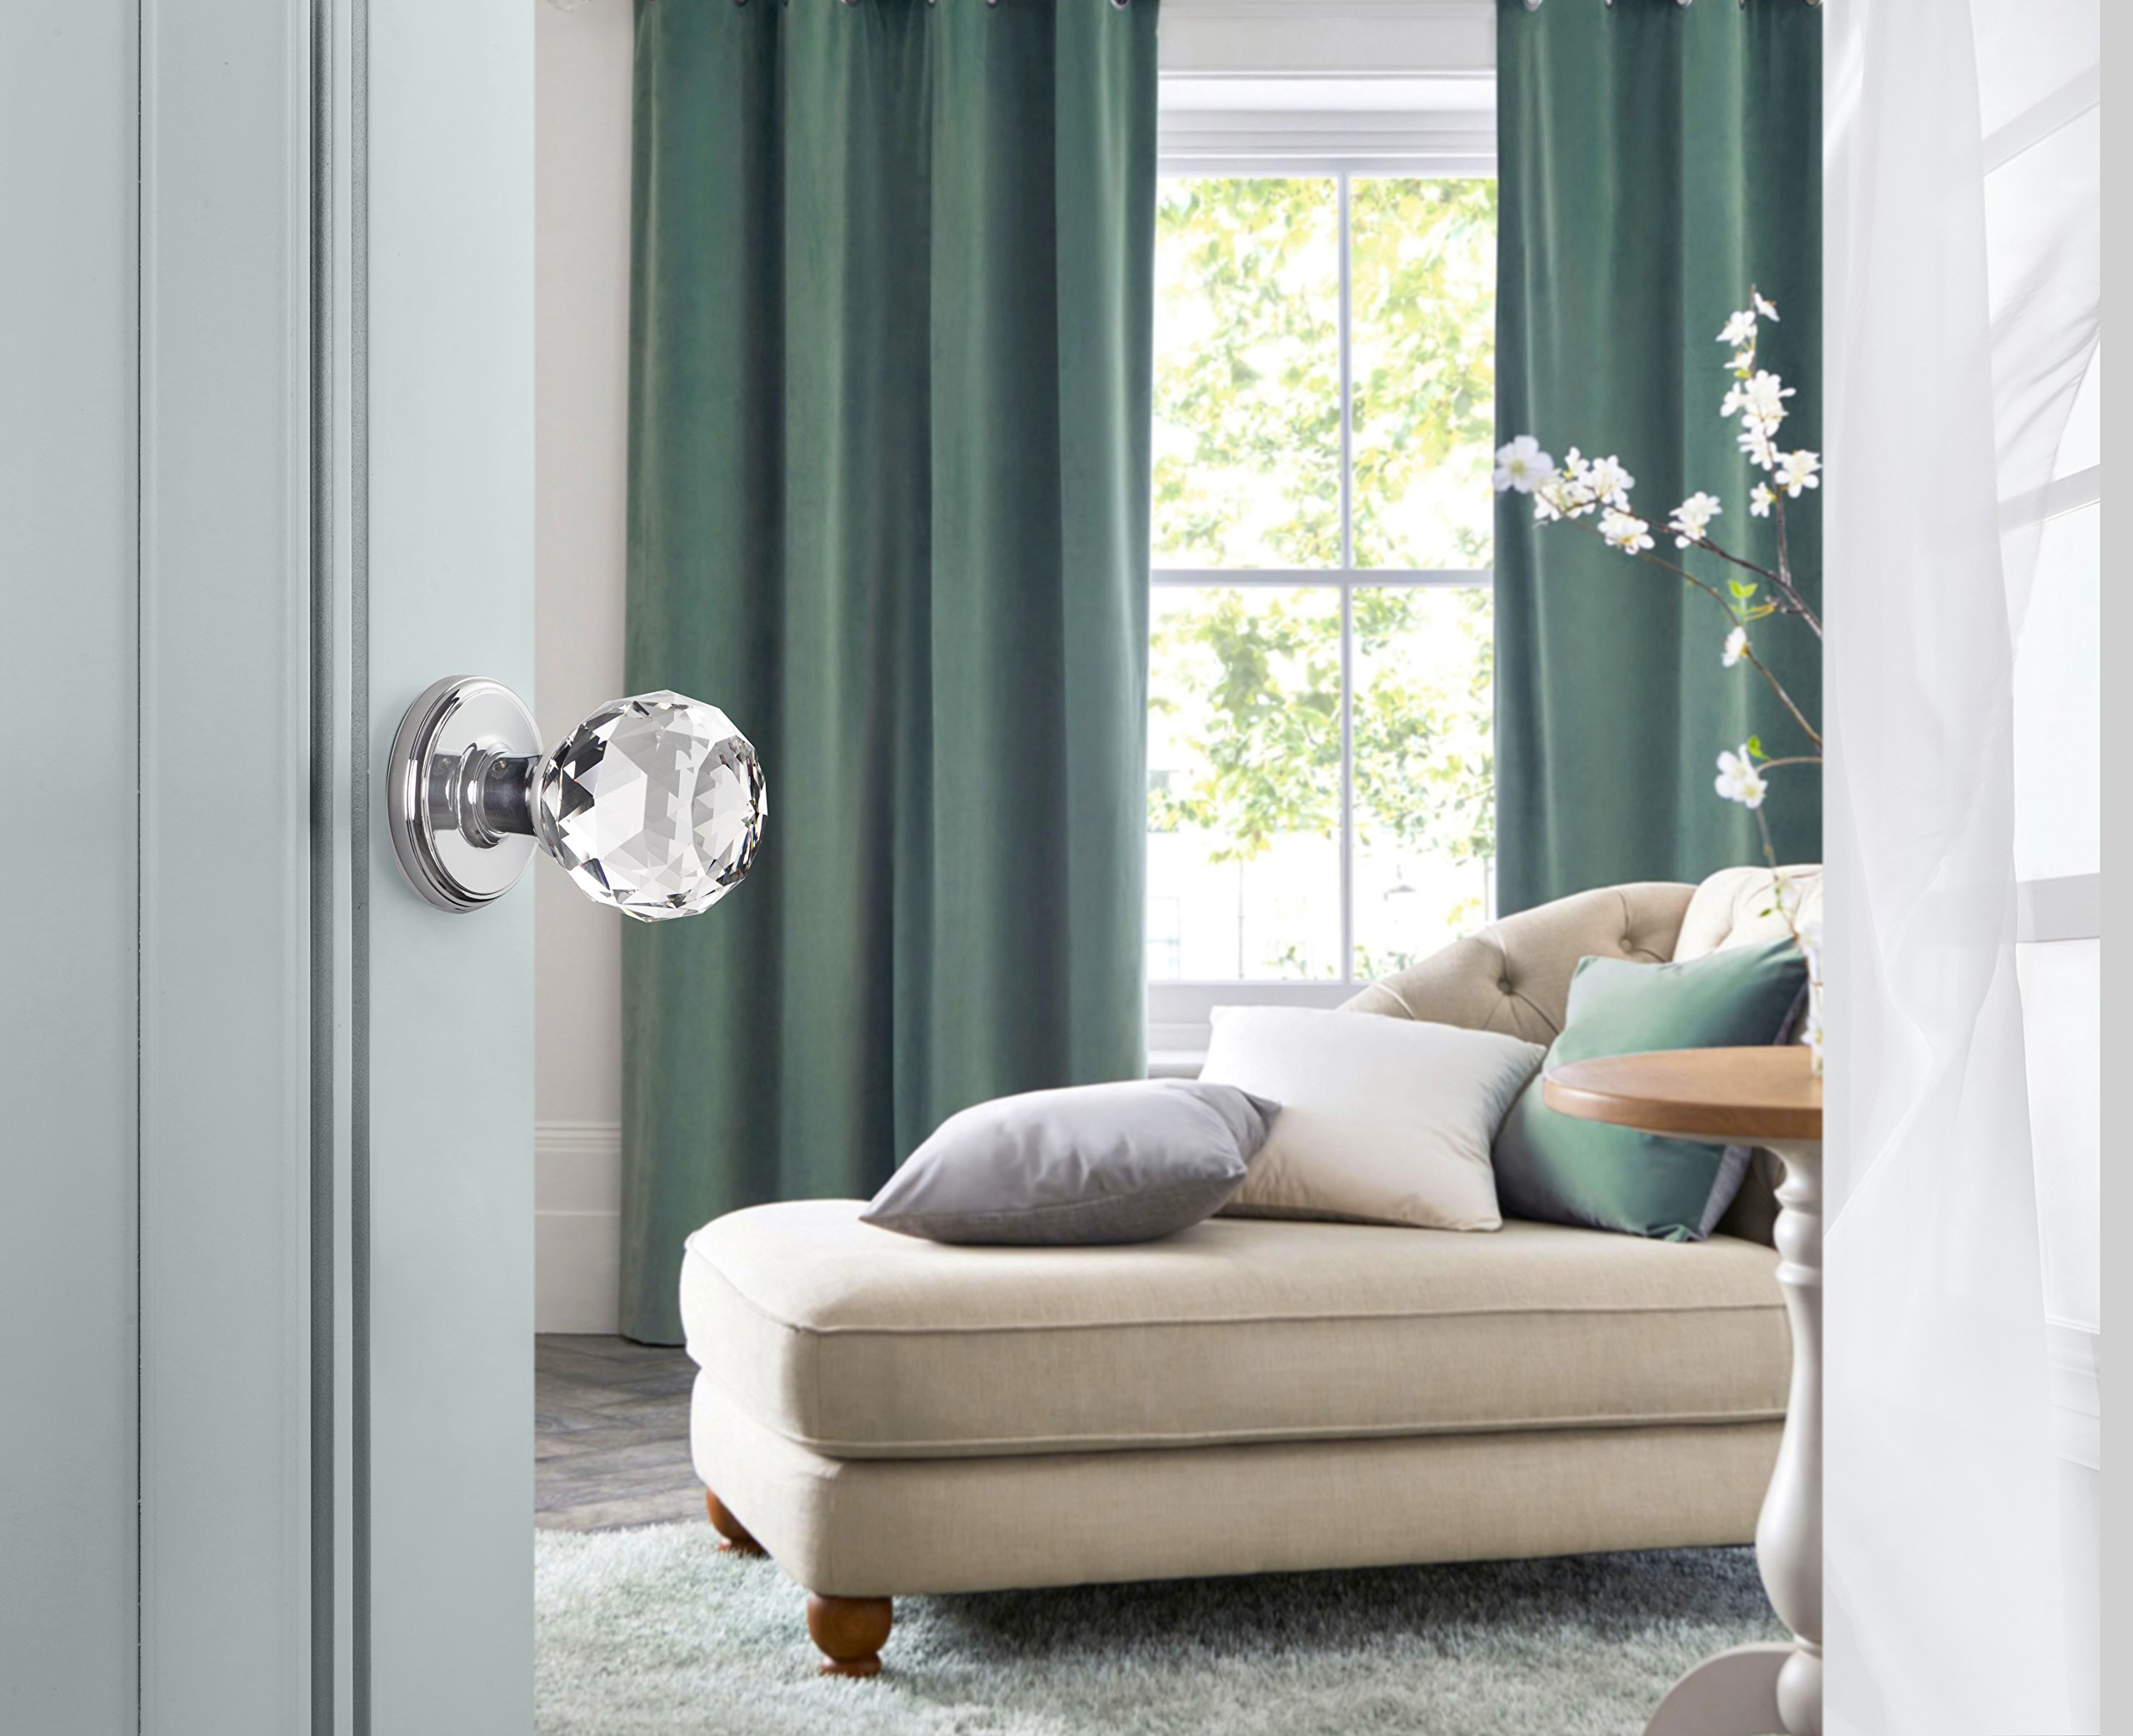 Decor Living, AMG and Enchante Accessories Faceted Crystal Door Knobs with Lock, Privacy Function for Bed and Bath, IRIS Collection, Polished Chrome by DECOR LIVING (Image #2)